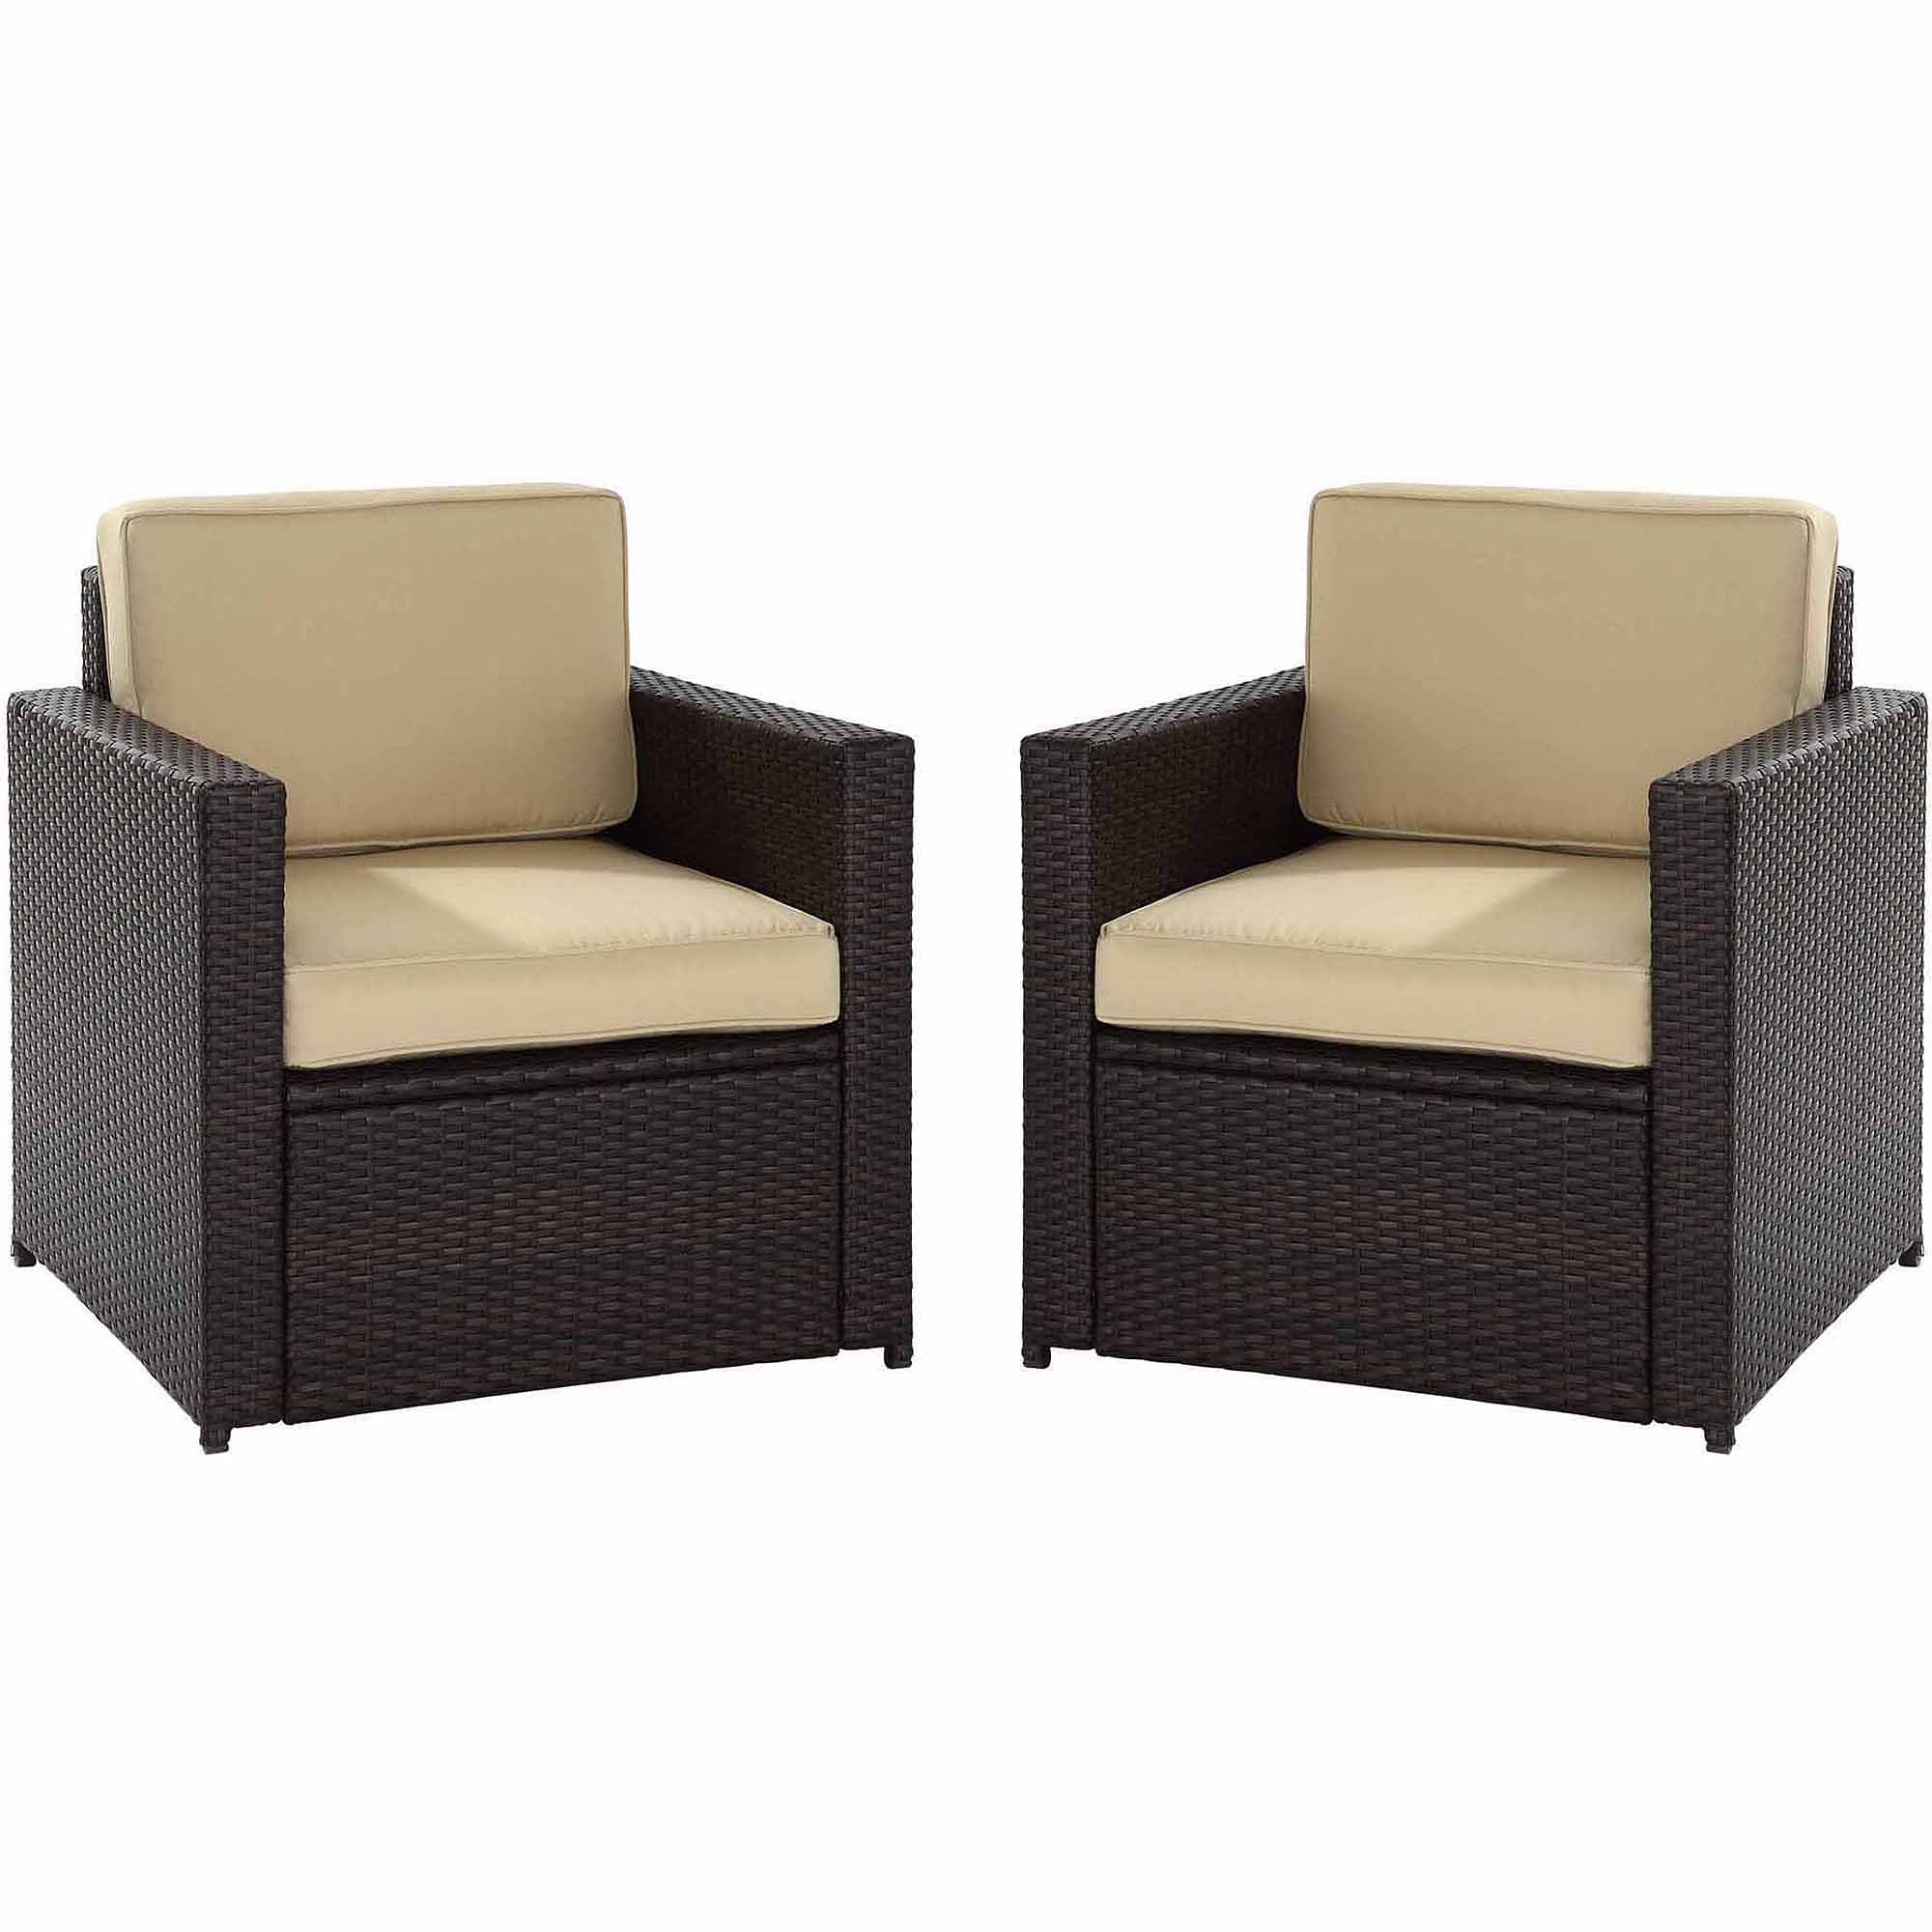 Sofa Repair Jakarta Crosley Furniture Palm Harbor 2 Piece Outdoor Wicker Seating Set